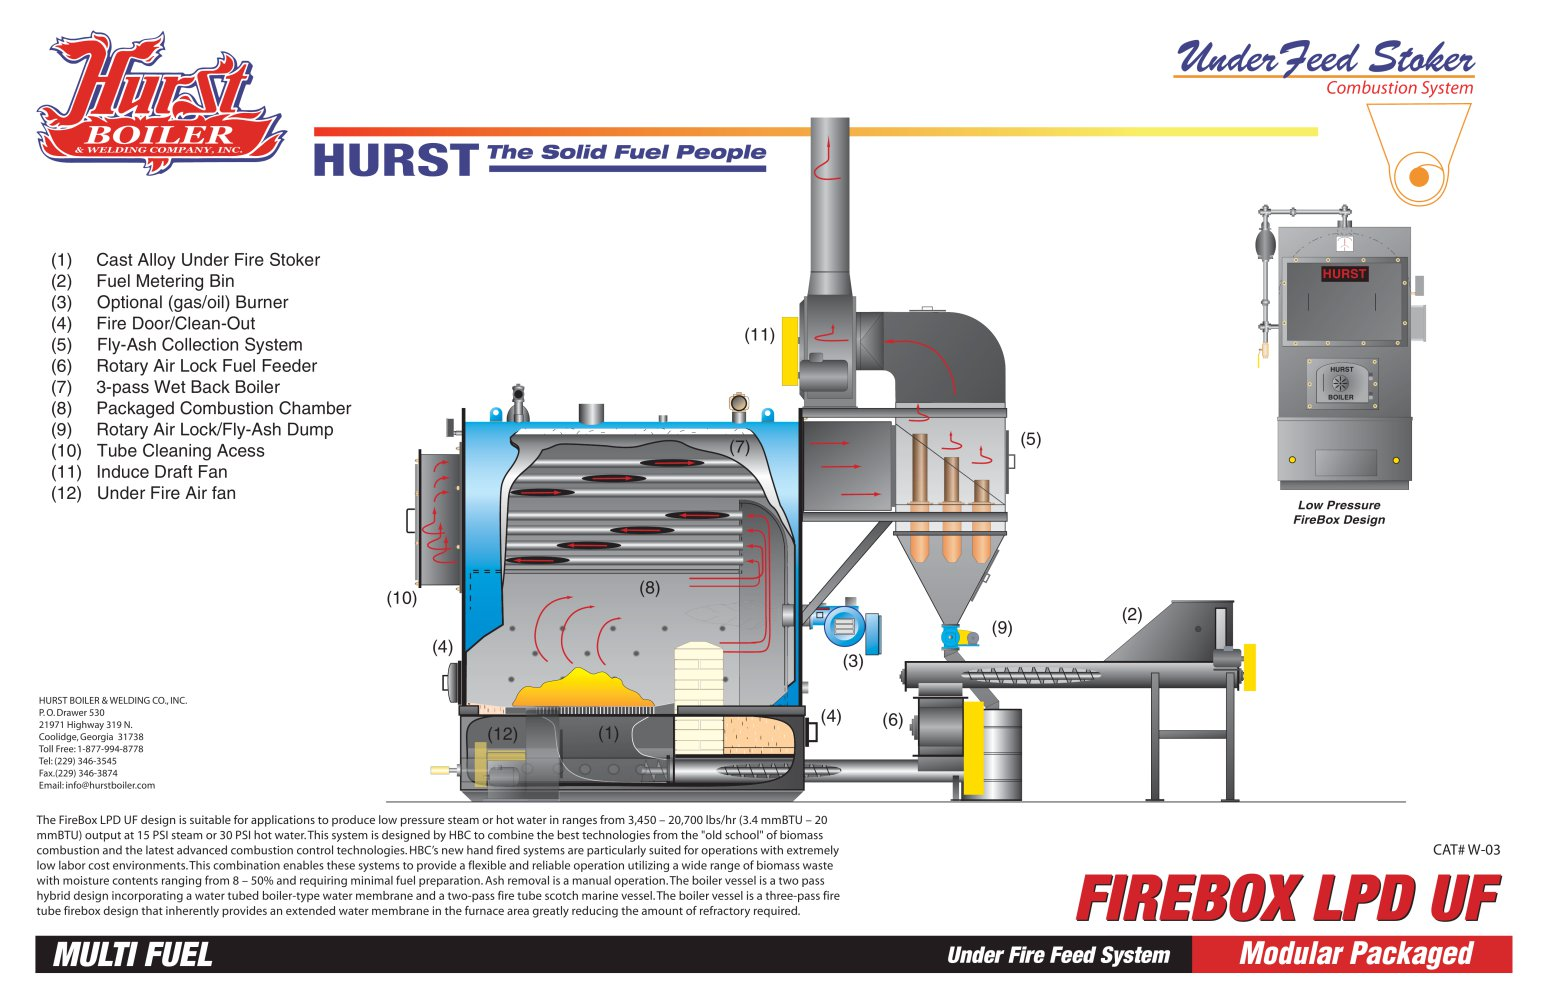 Wood 03 firebox hpd uf hurst boiler welding co inc pdf wood 03 firebox hpd uf 1 1 pages pooptronica